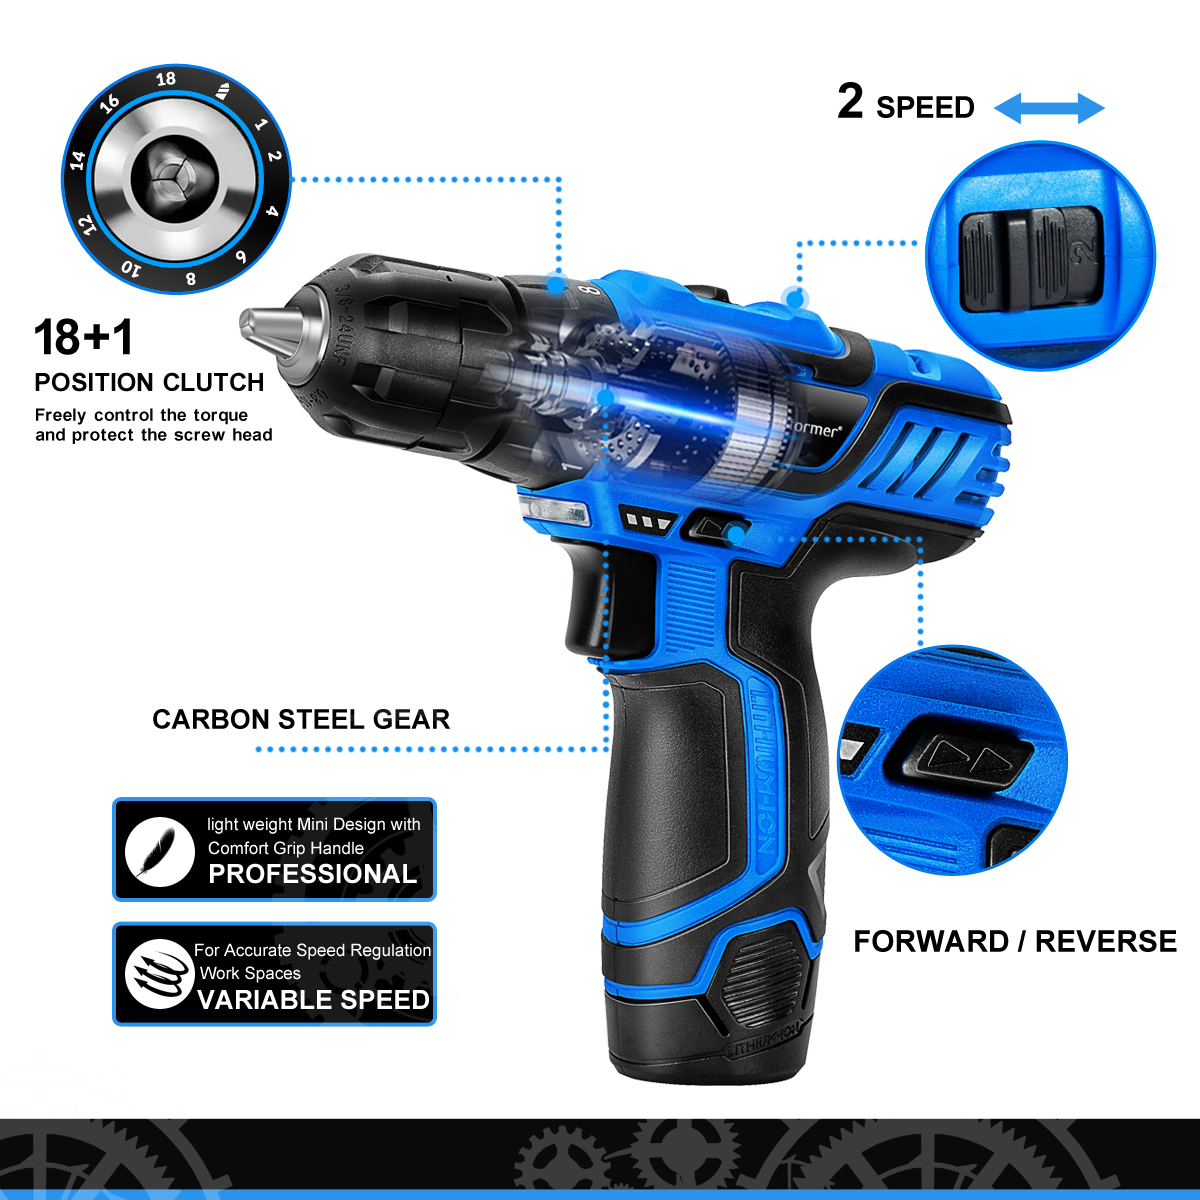 Image 3 - PROSTORMER 12V Series Cordless Power Tools Household DIY Electric Drill Screwdriver Wrench Ratchet Wrench Professional Tools-in Electric Drills from Tools on